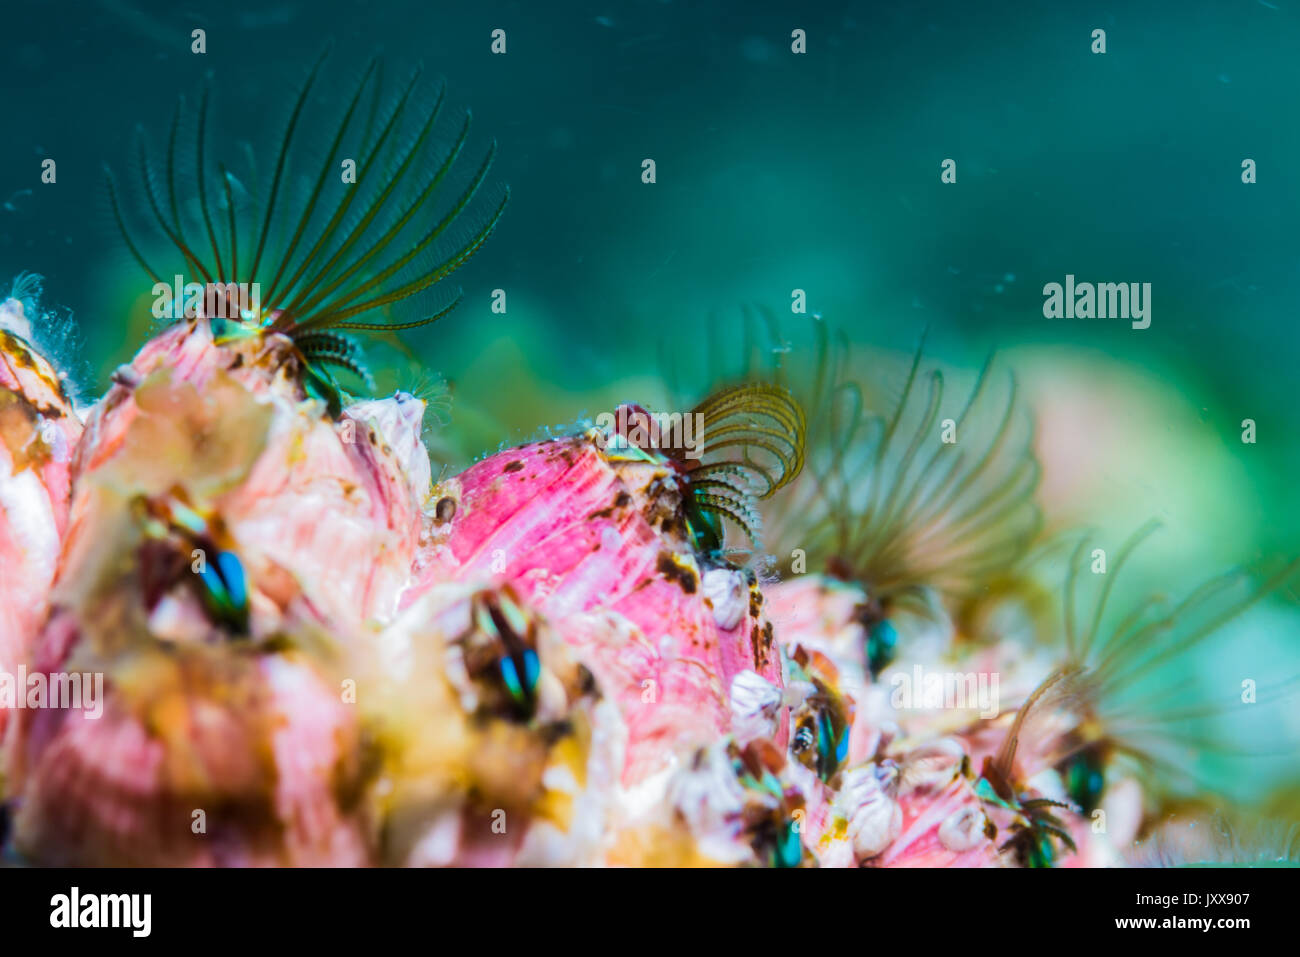 red barnacles with feathery food-catching appendages. closeup - Stock Image